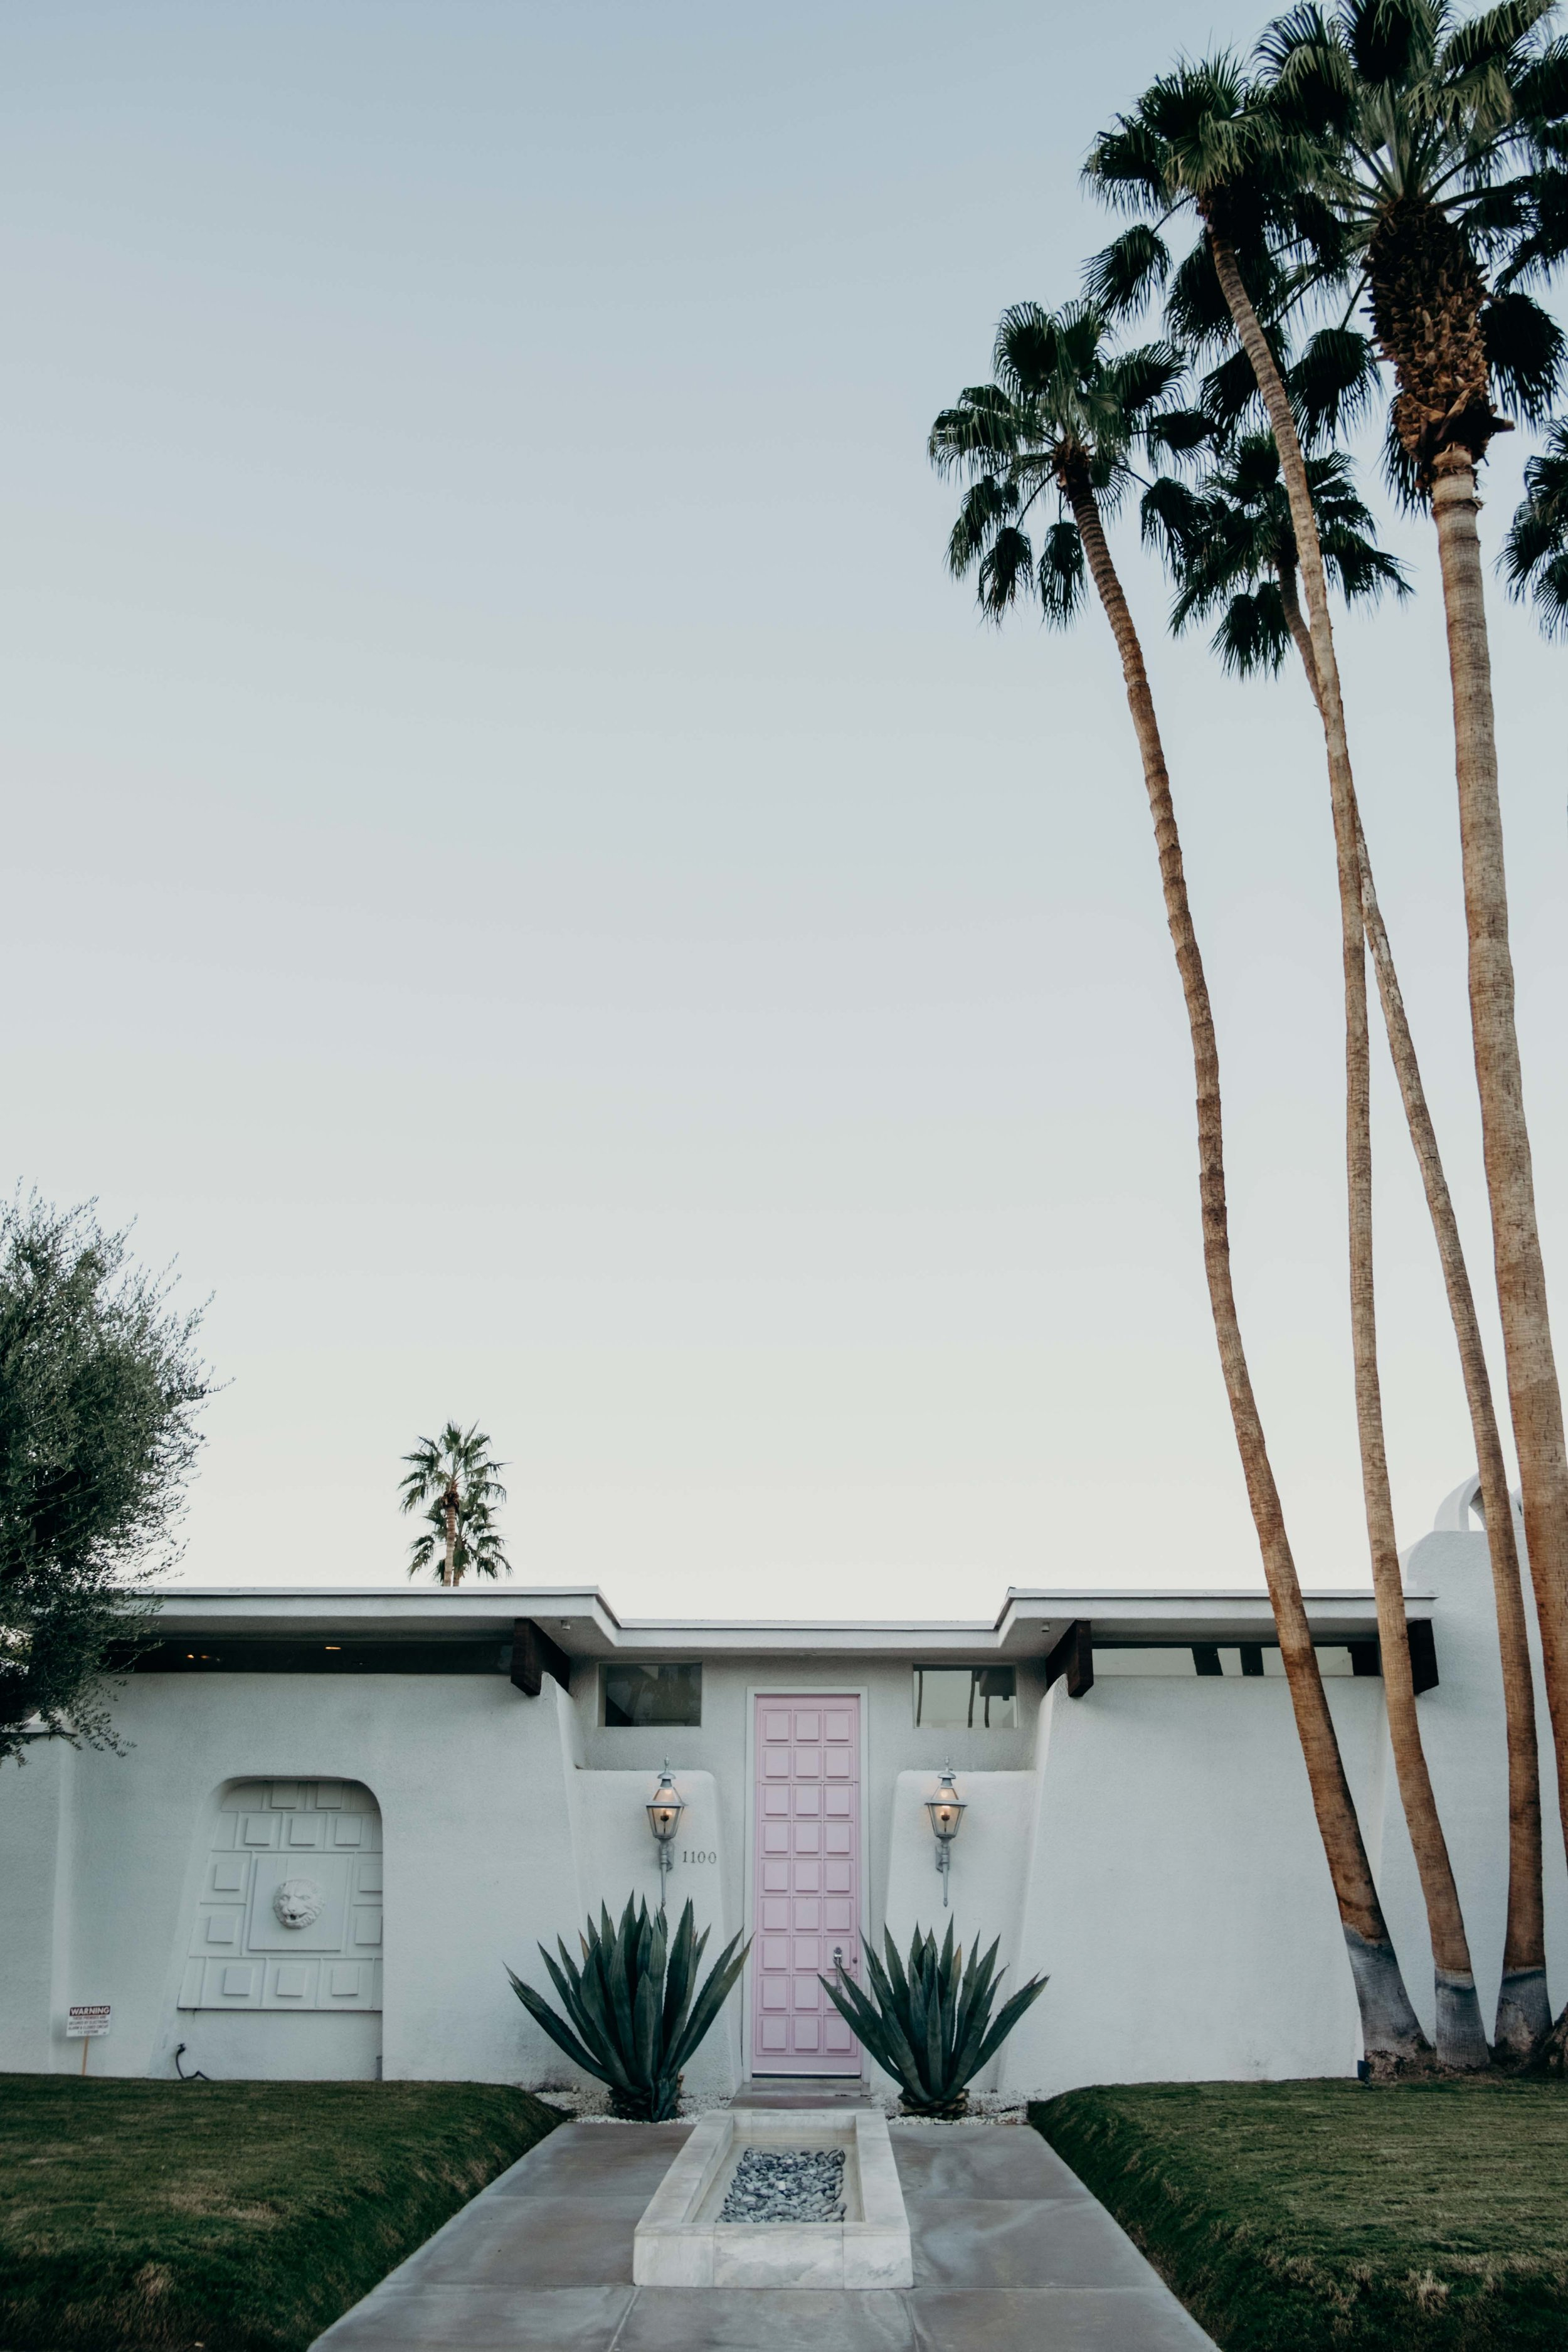 20171005_Palm Springs Travel Guide_39.jpg